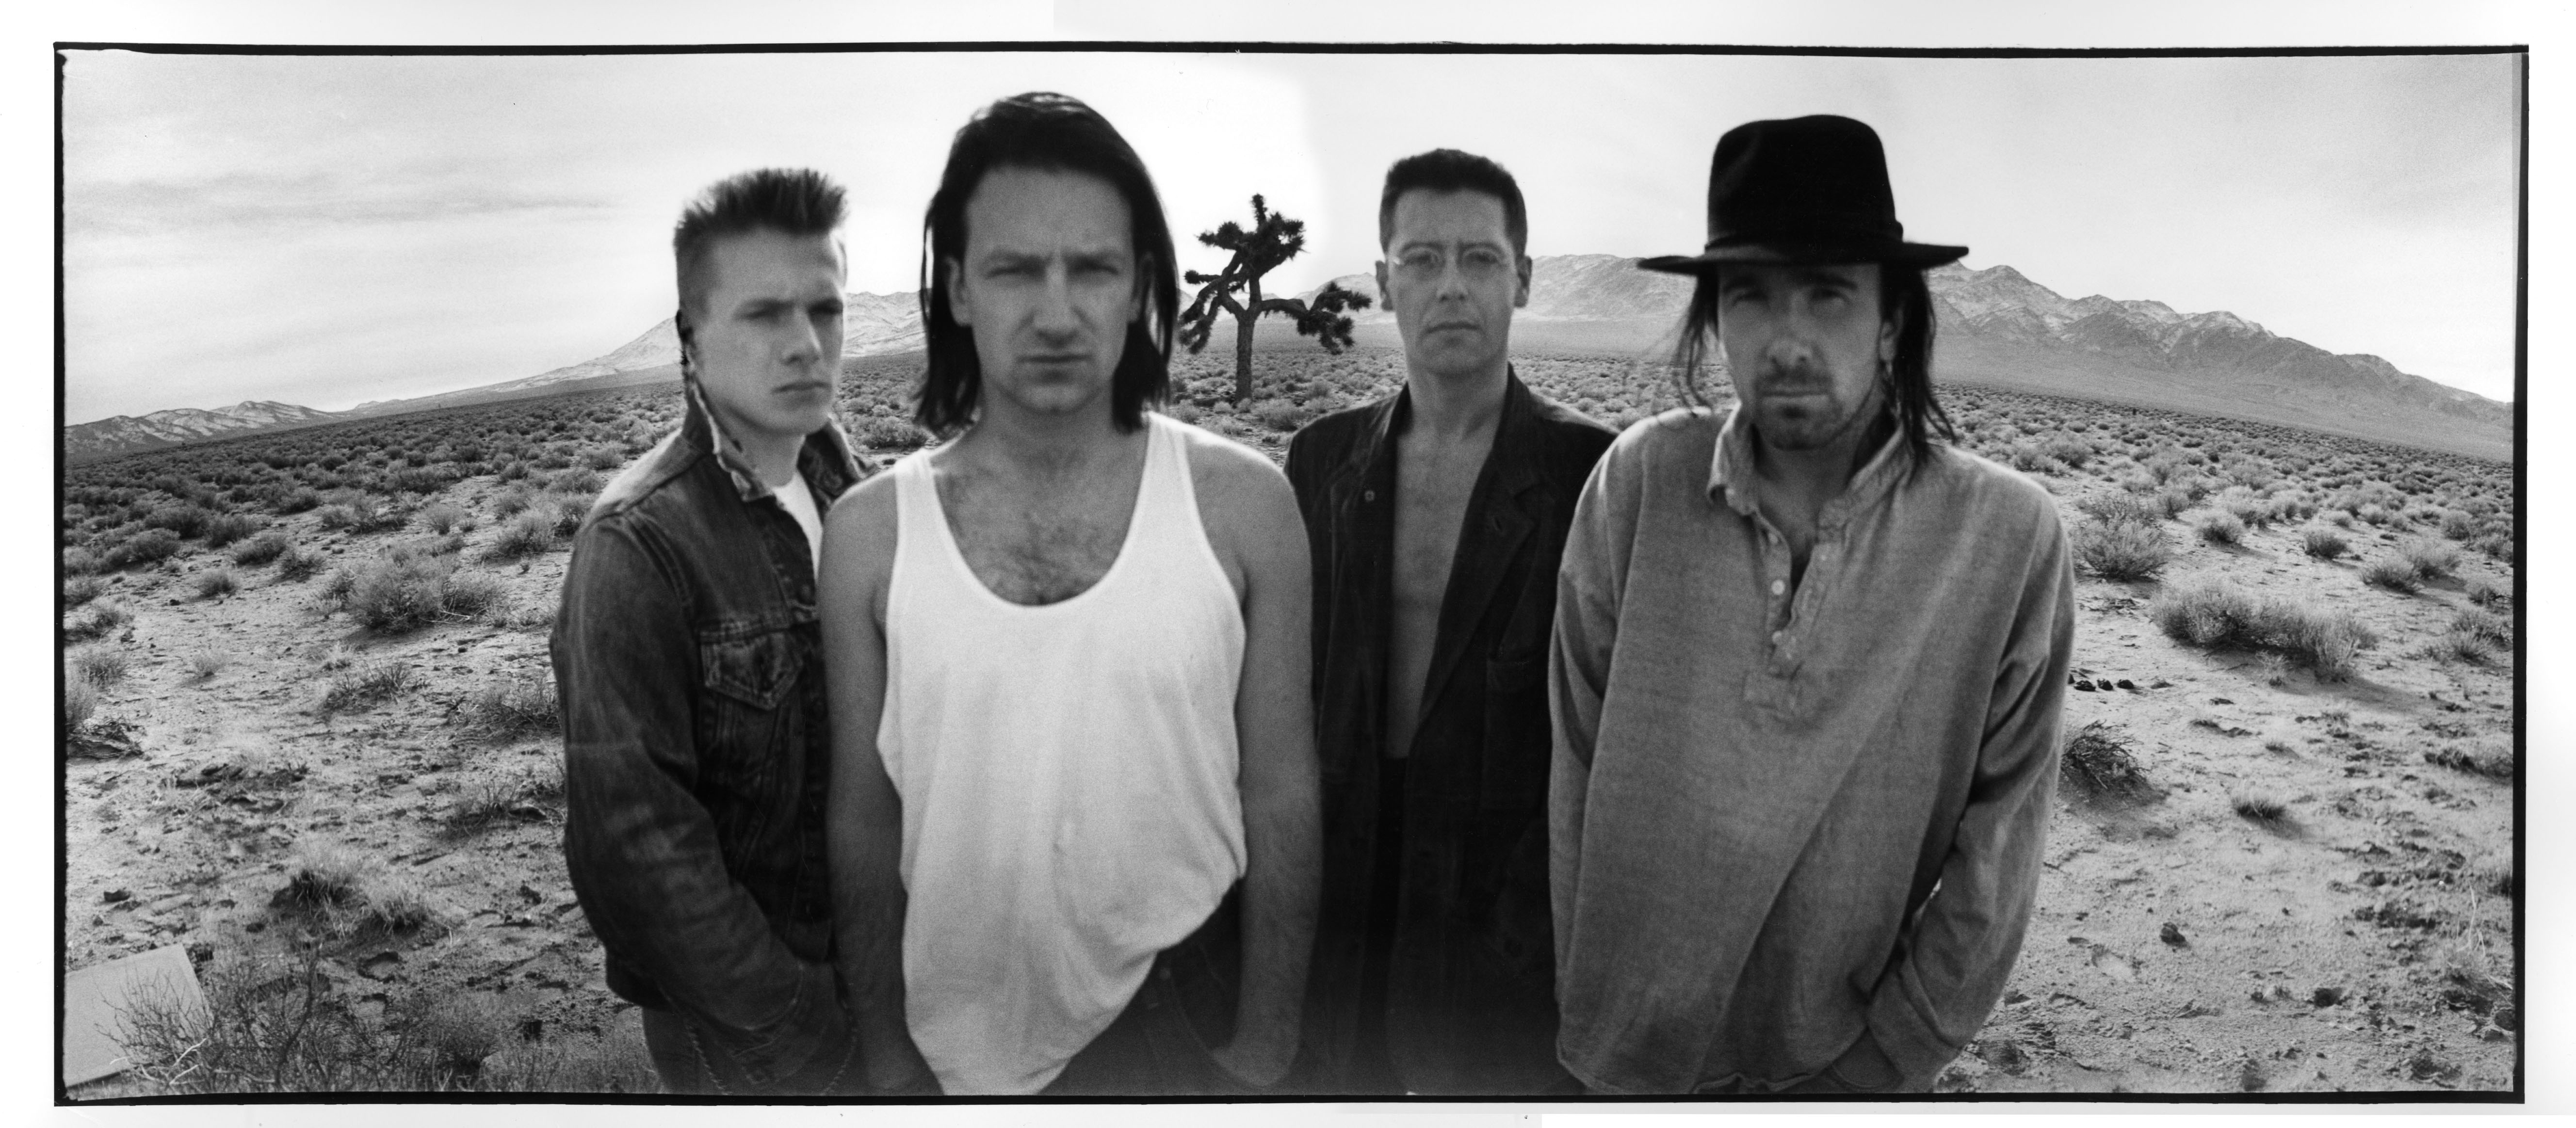 jtpanorama U2's American Dream: The Joshua Tree 30 Years Later